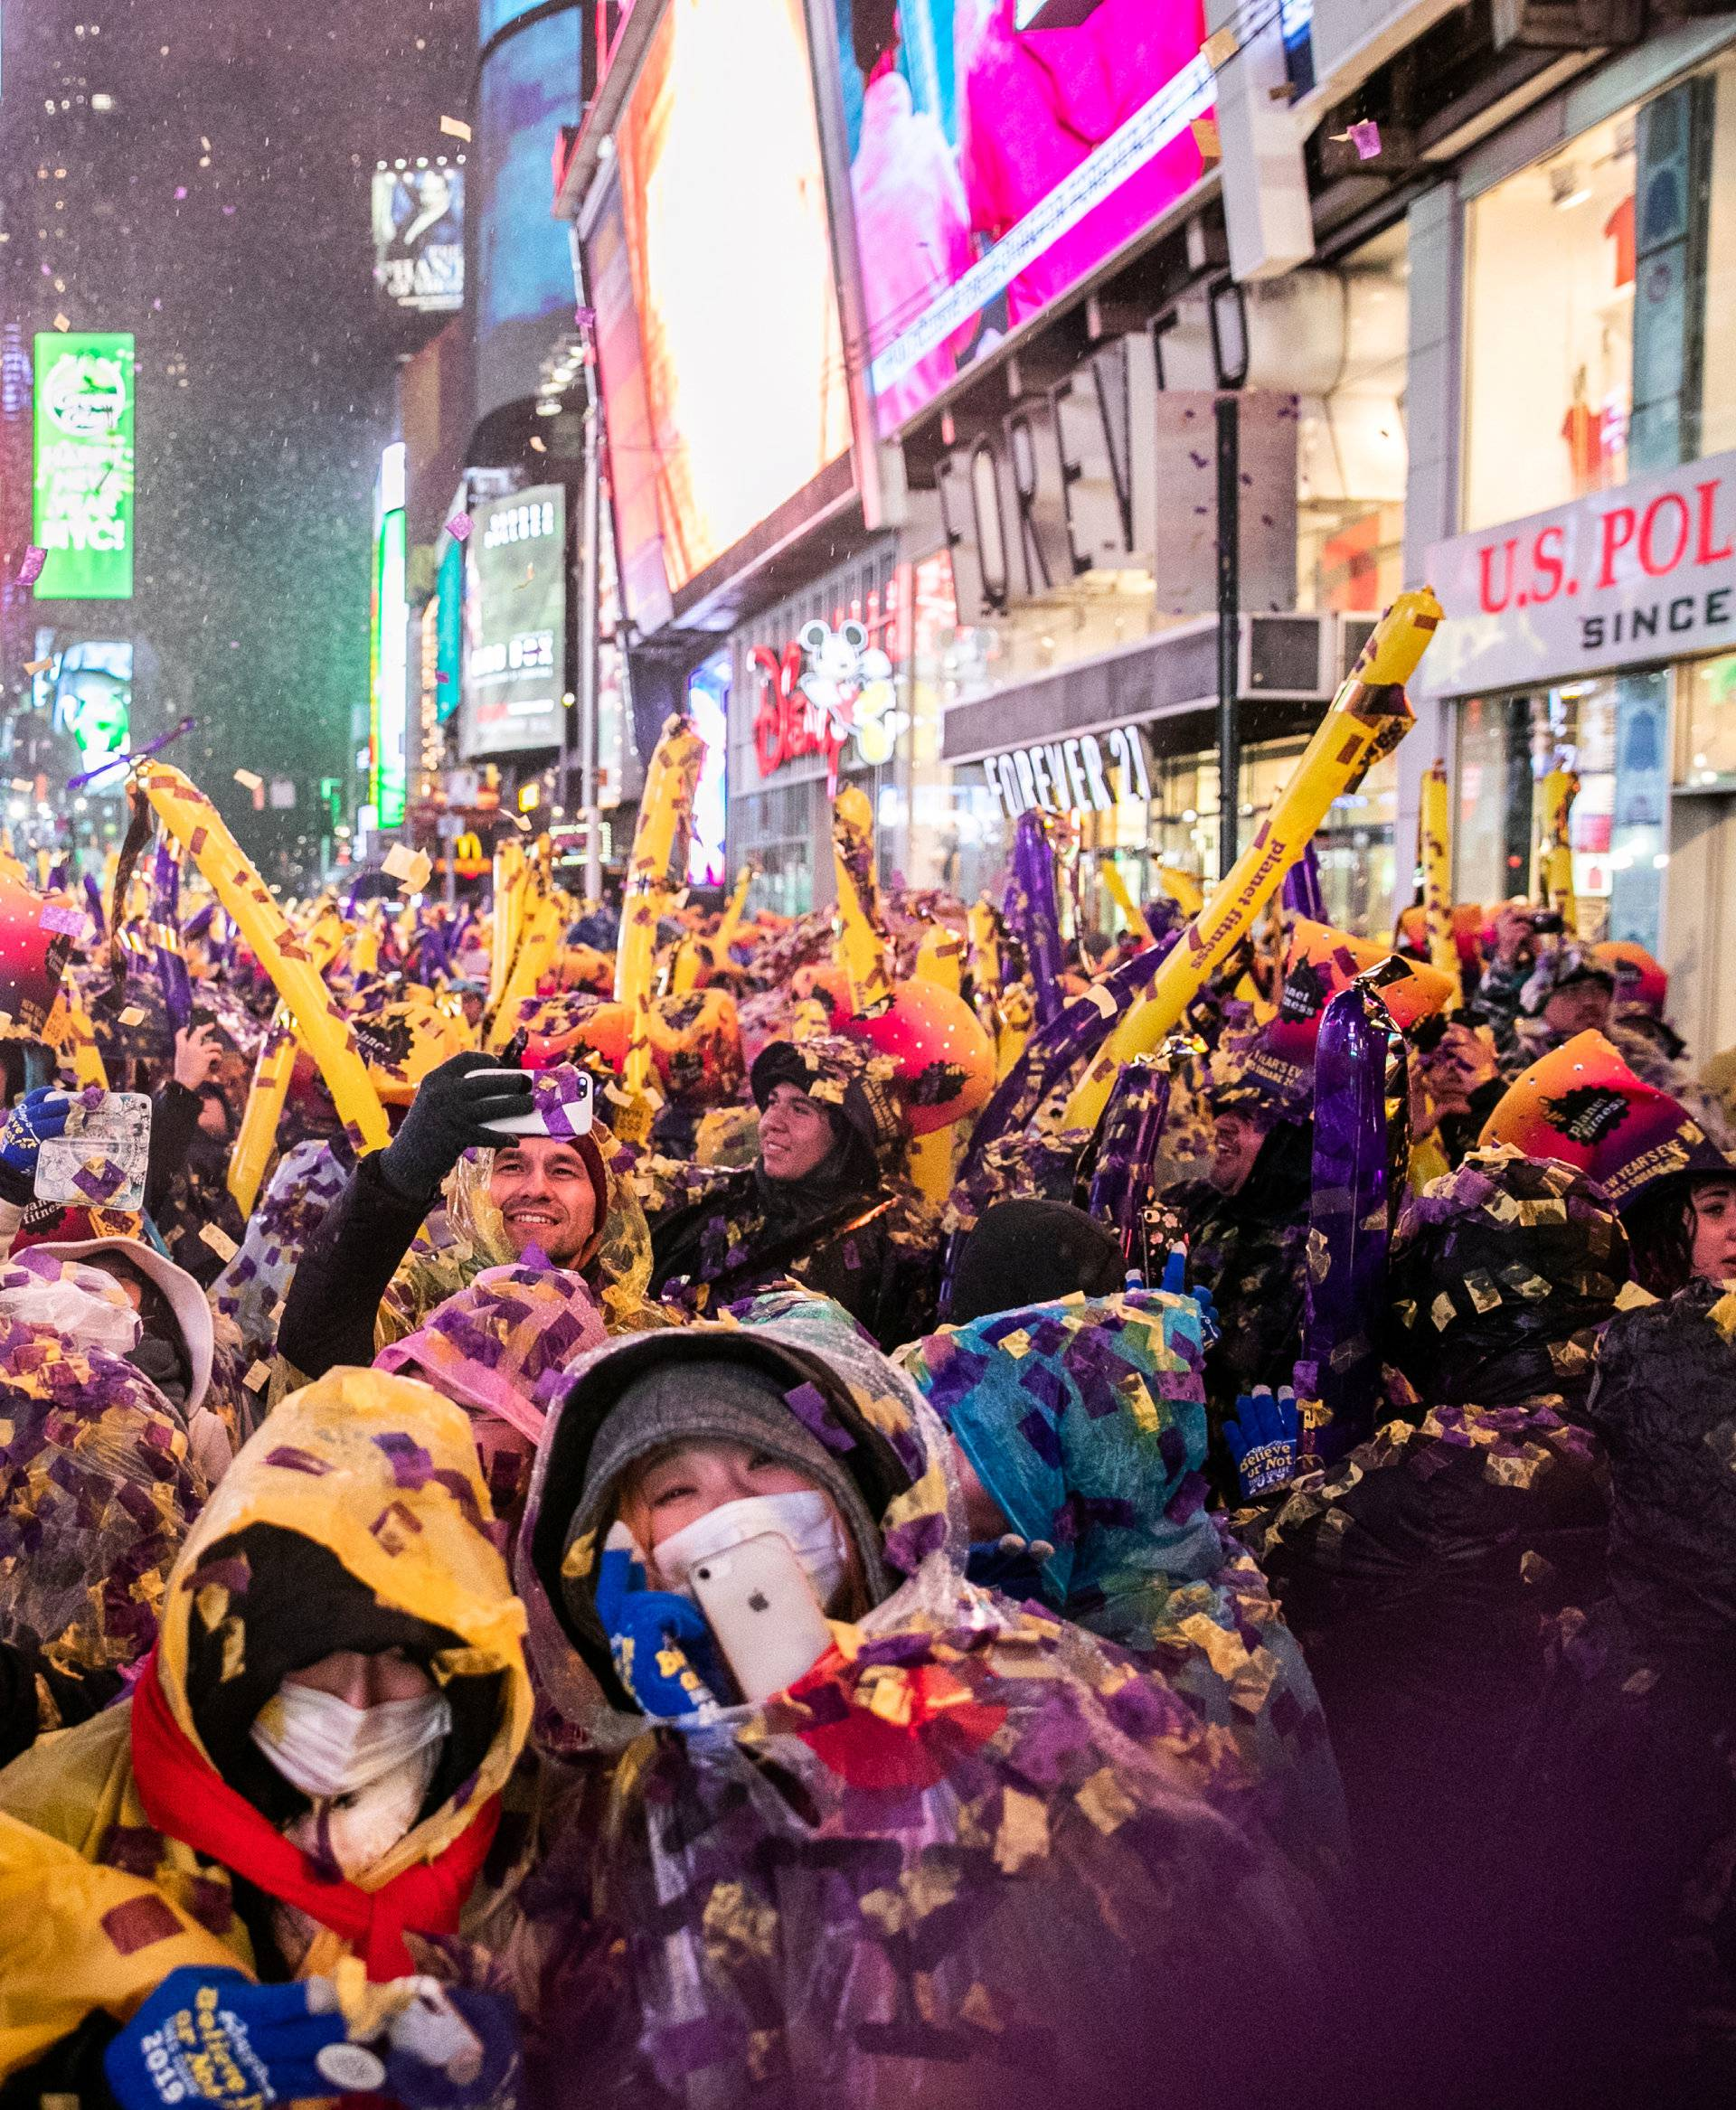 Revelers celebrate New Year's Eve in Times Square in Manhattan